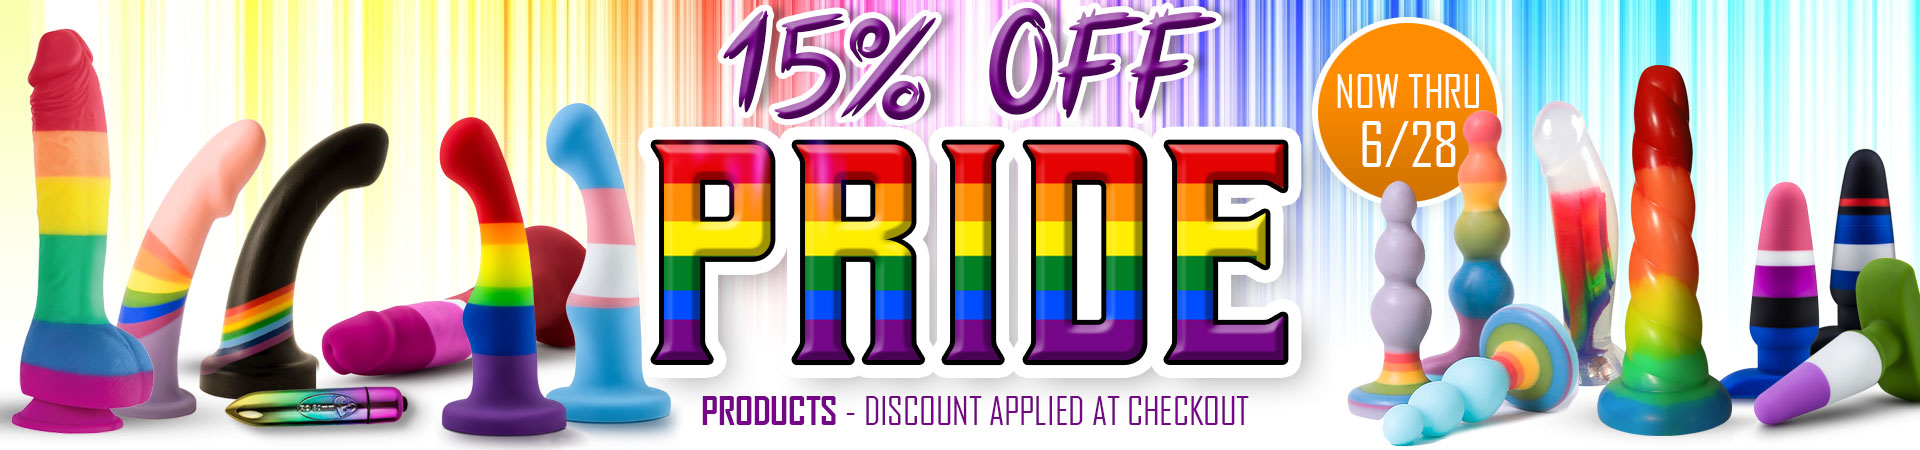 15% Off Pride Products - Now Thru 6/28